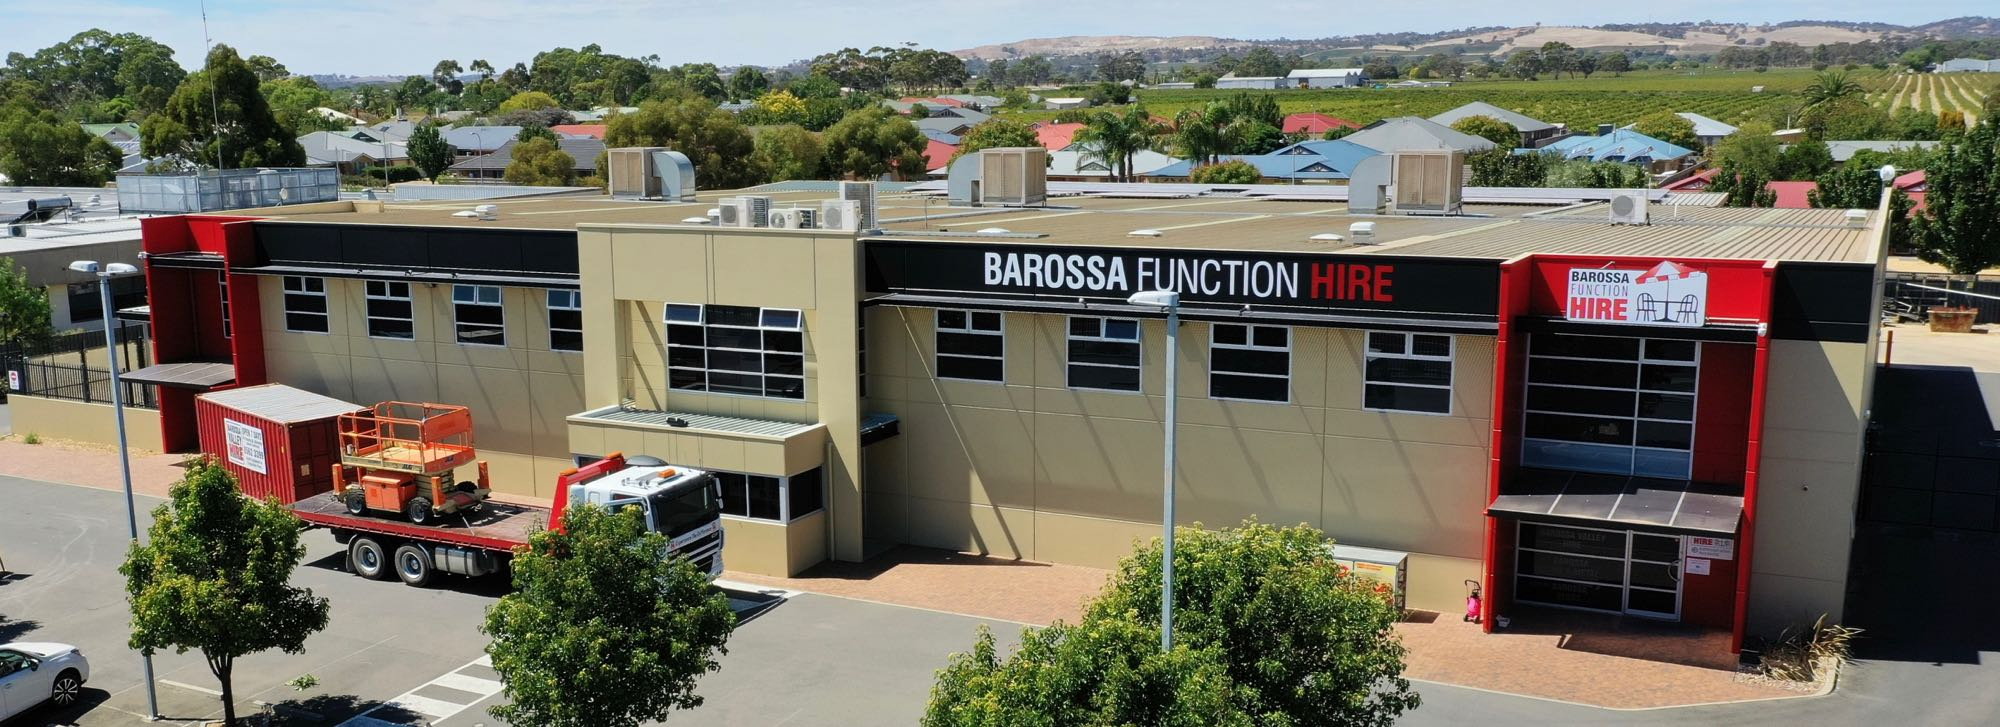 Barossa Function Hire from the air